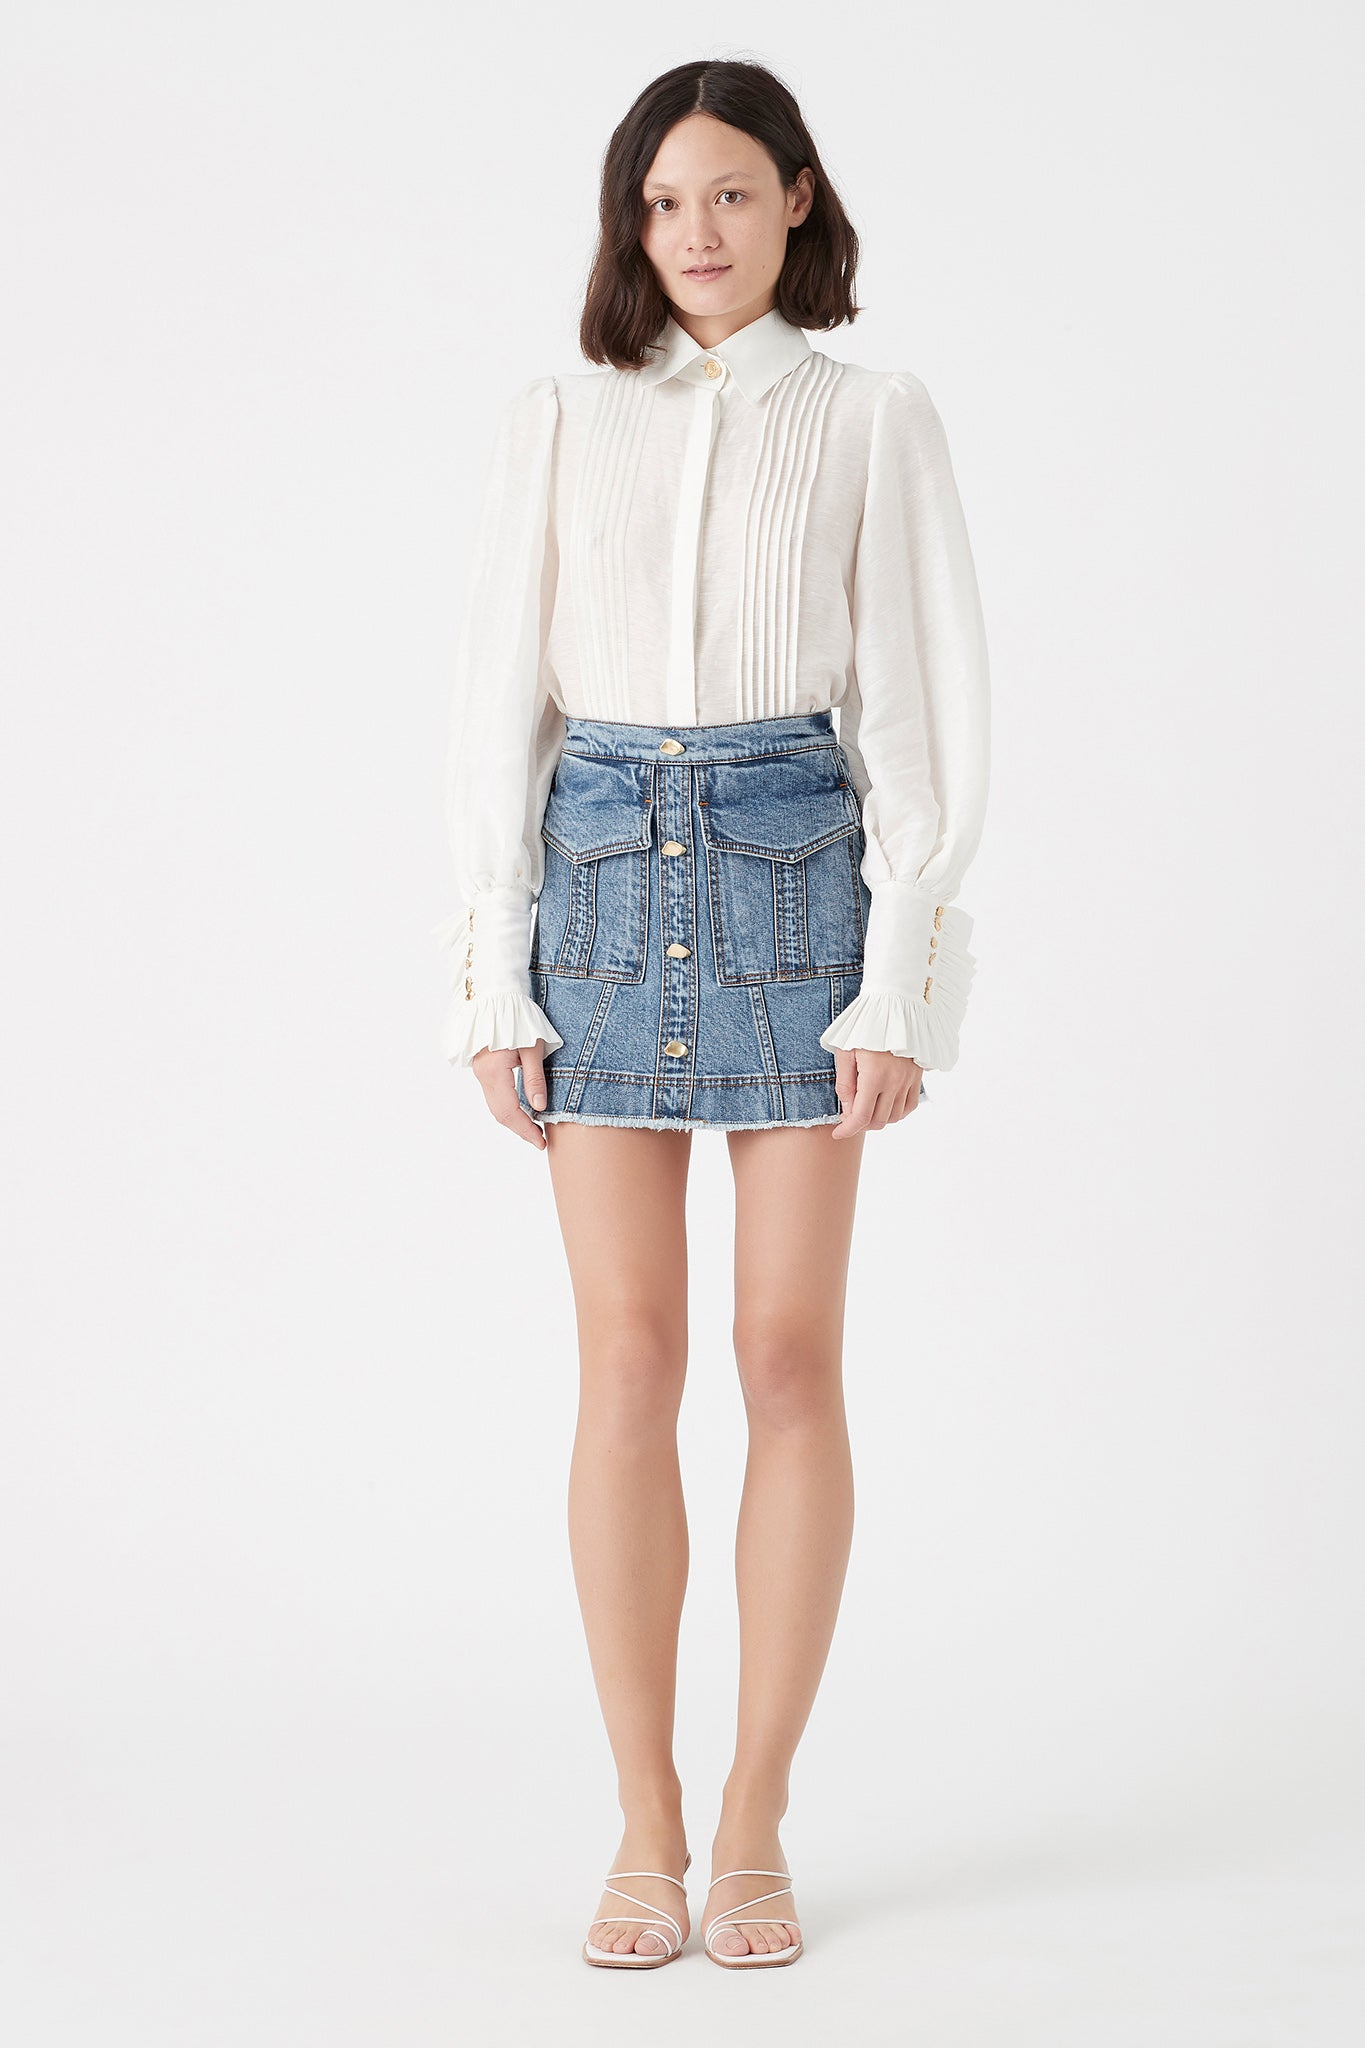 Mimosa Denim Pocket Skirt Outfit View